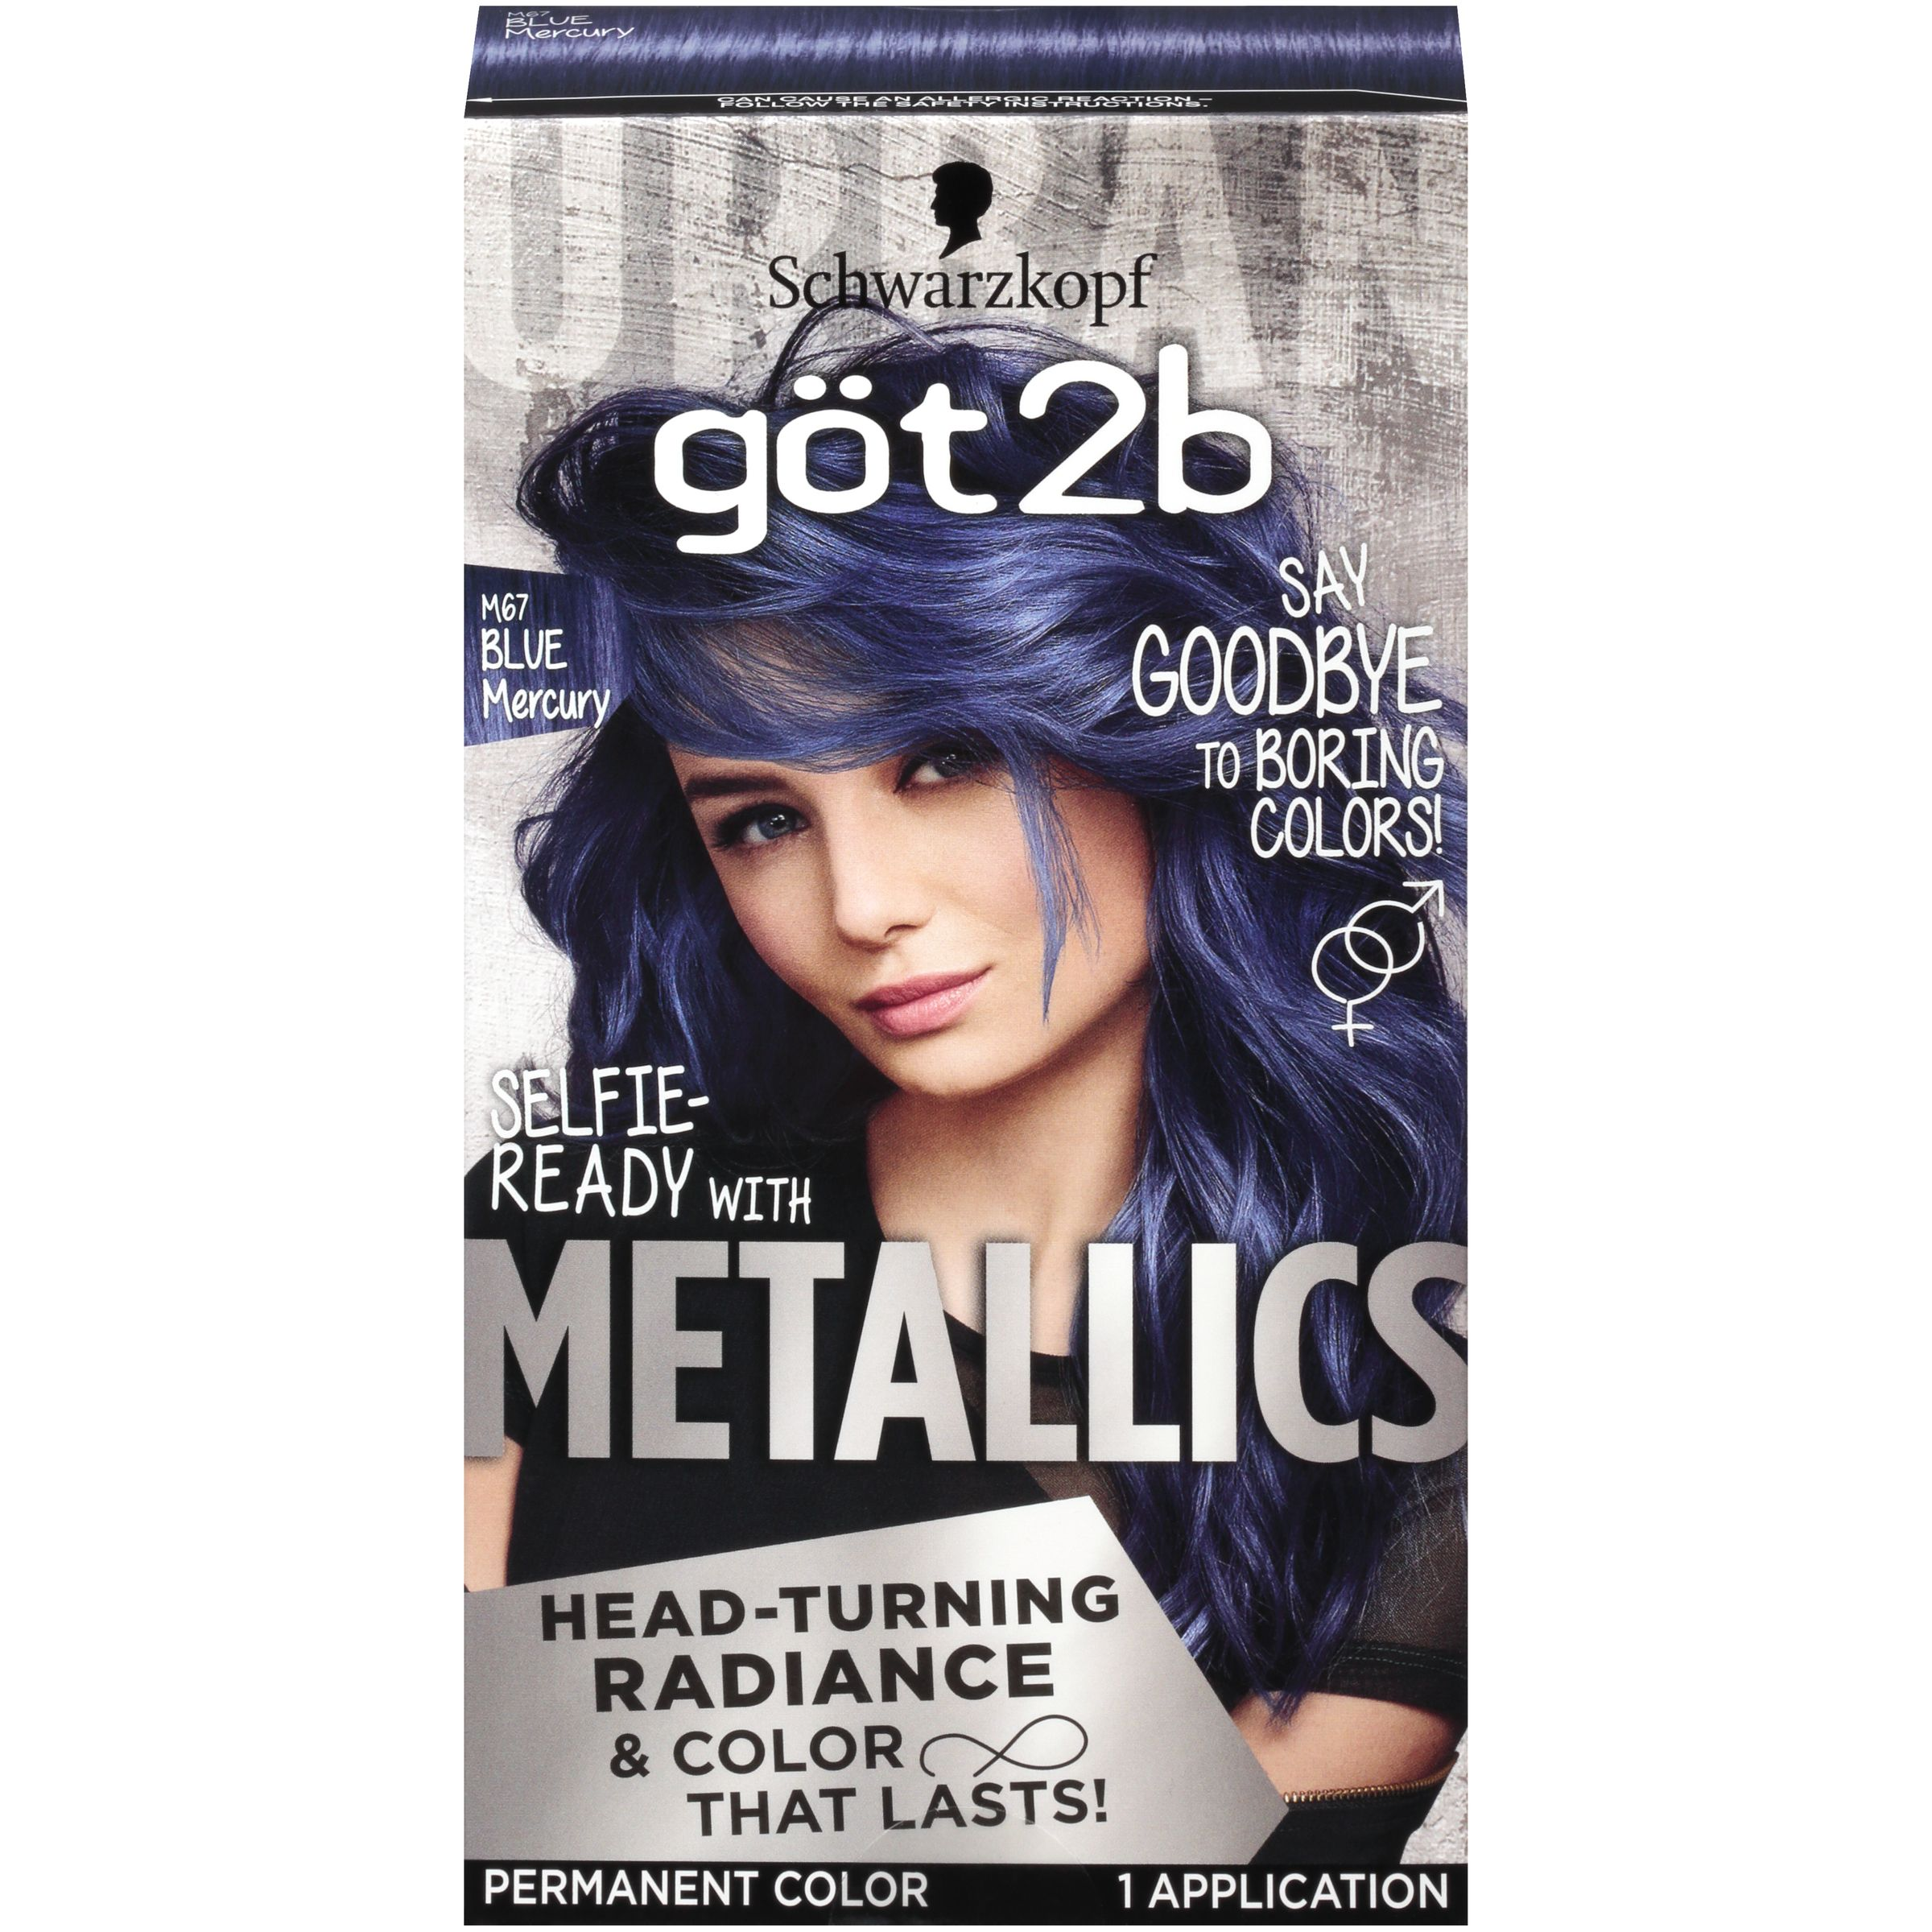 Got2b Metallic Permanent Hair Color M71 Metallic Silver Permanent